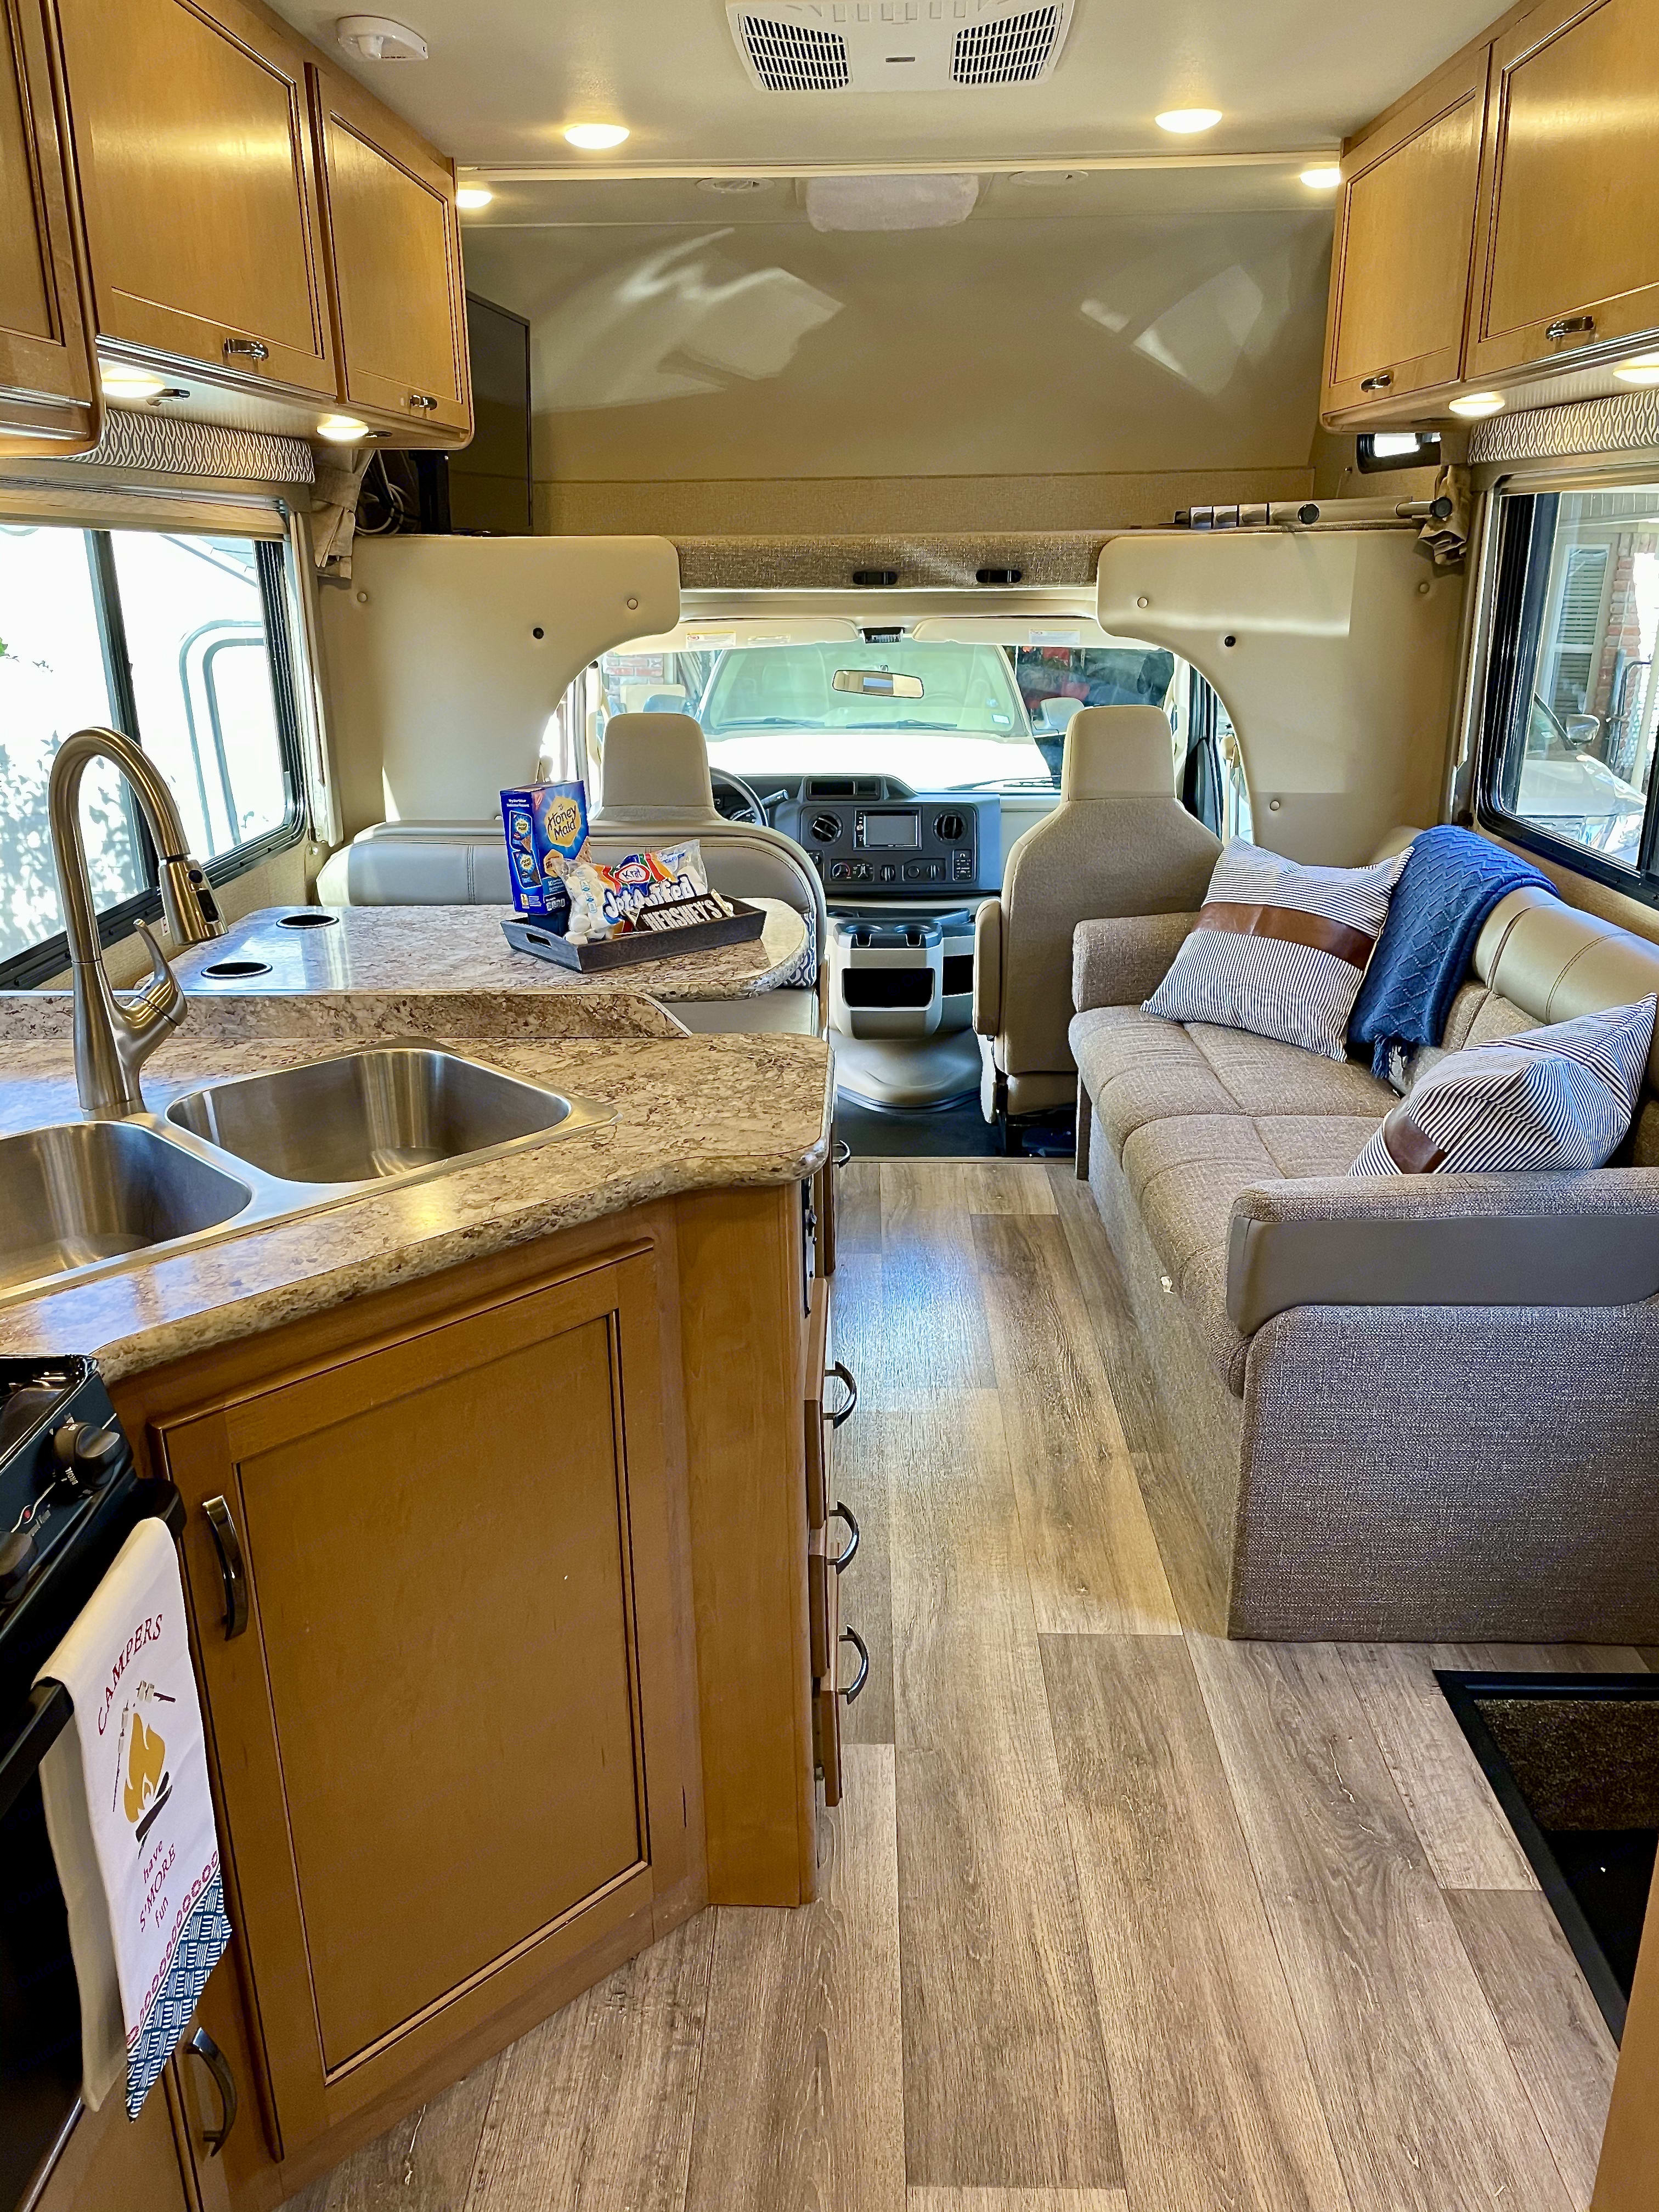 Kitchen, Microwave, Oven, Dining Table conversion bed, Couch Conversion Bed, Loft, TV. Thor Motor Coach Freedom Elite 2017